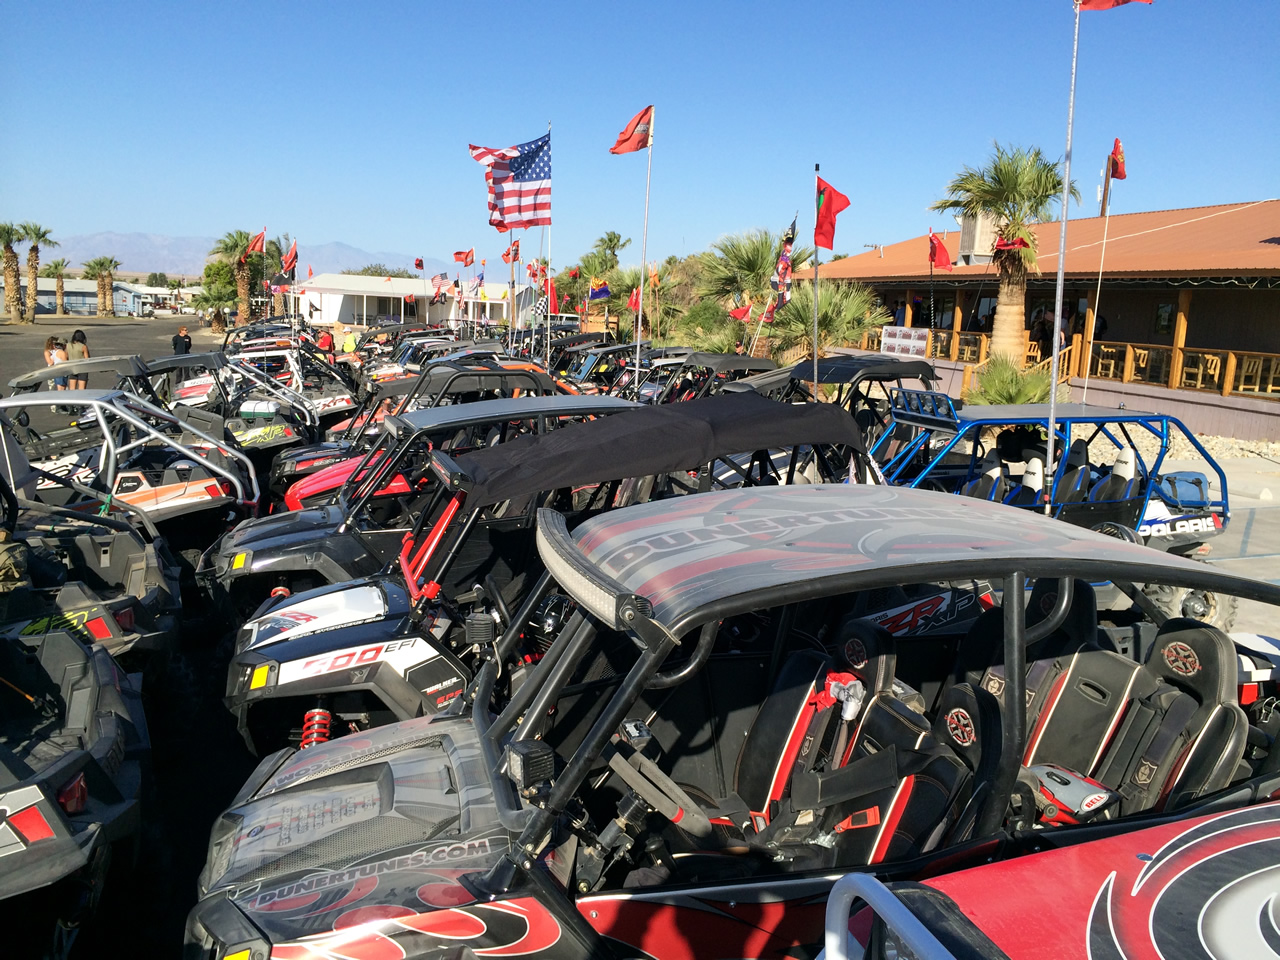 ATVs lined up at the annual RZR Forum at Glamis North